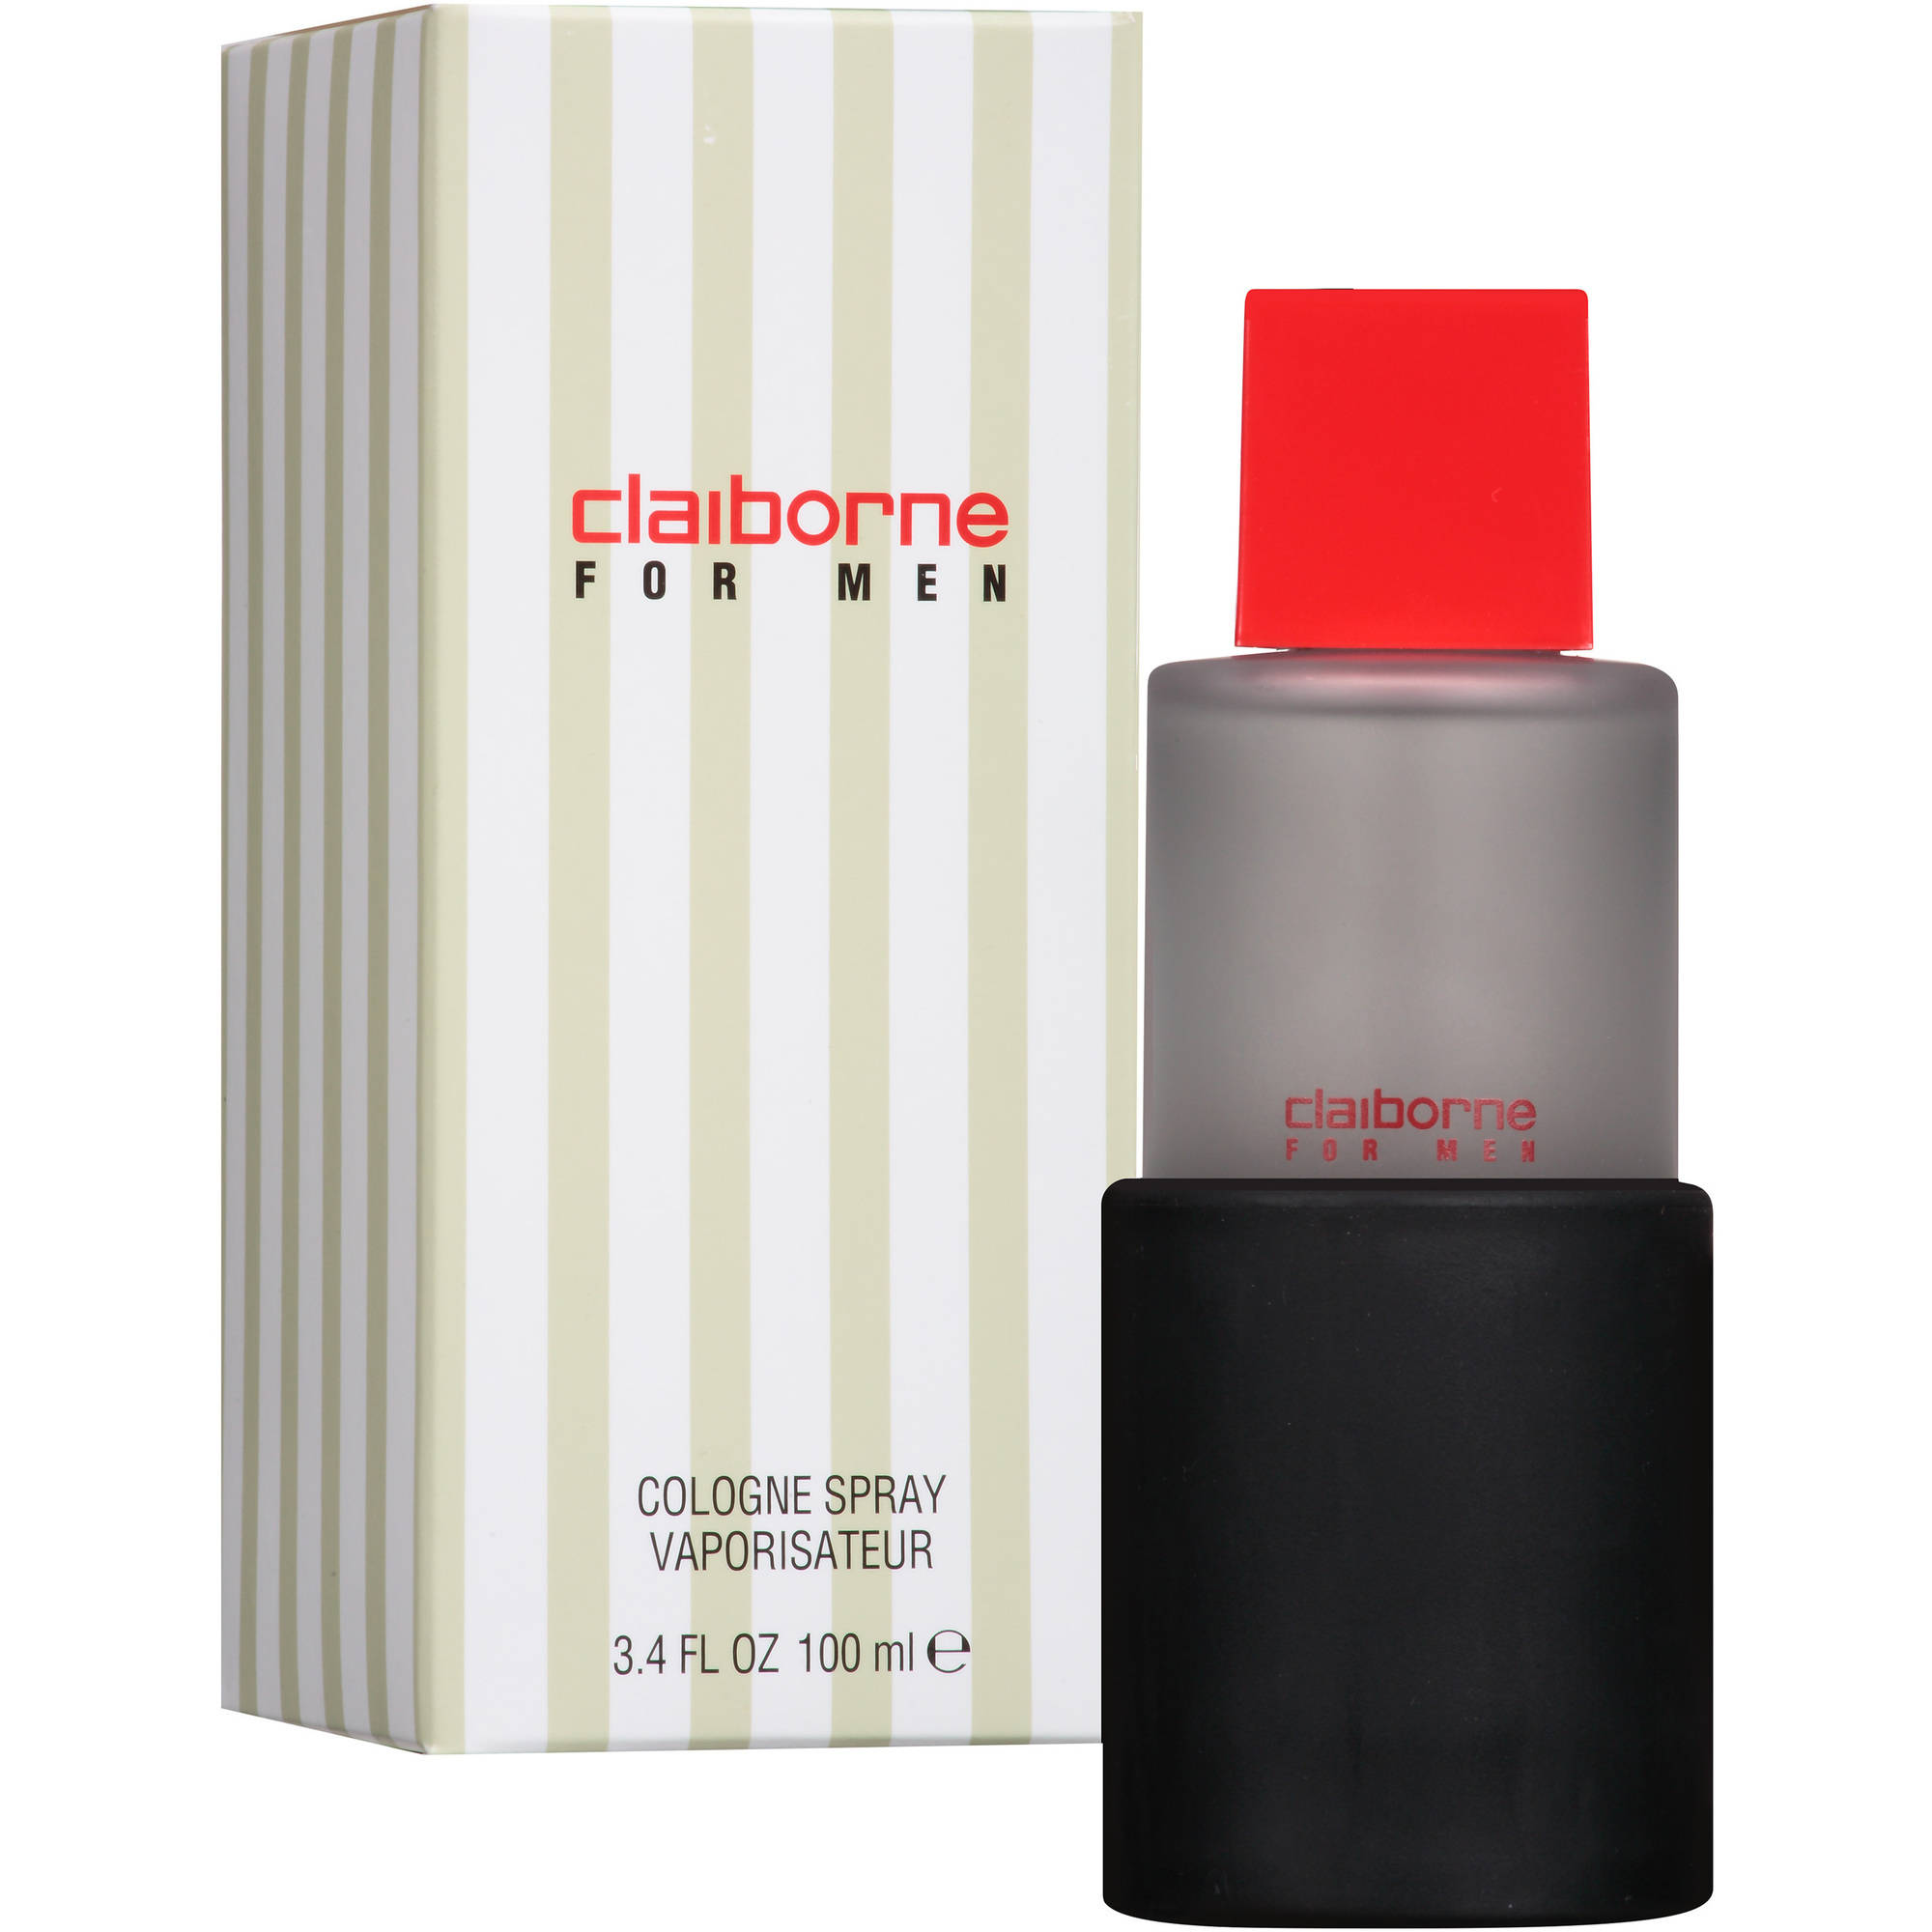 Claiborne Cologne Spray for Men, 3.4 fl oz